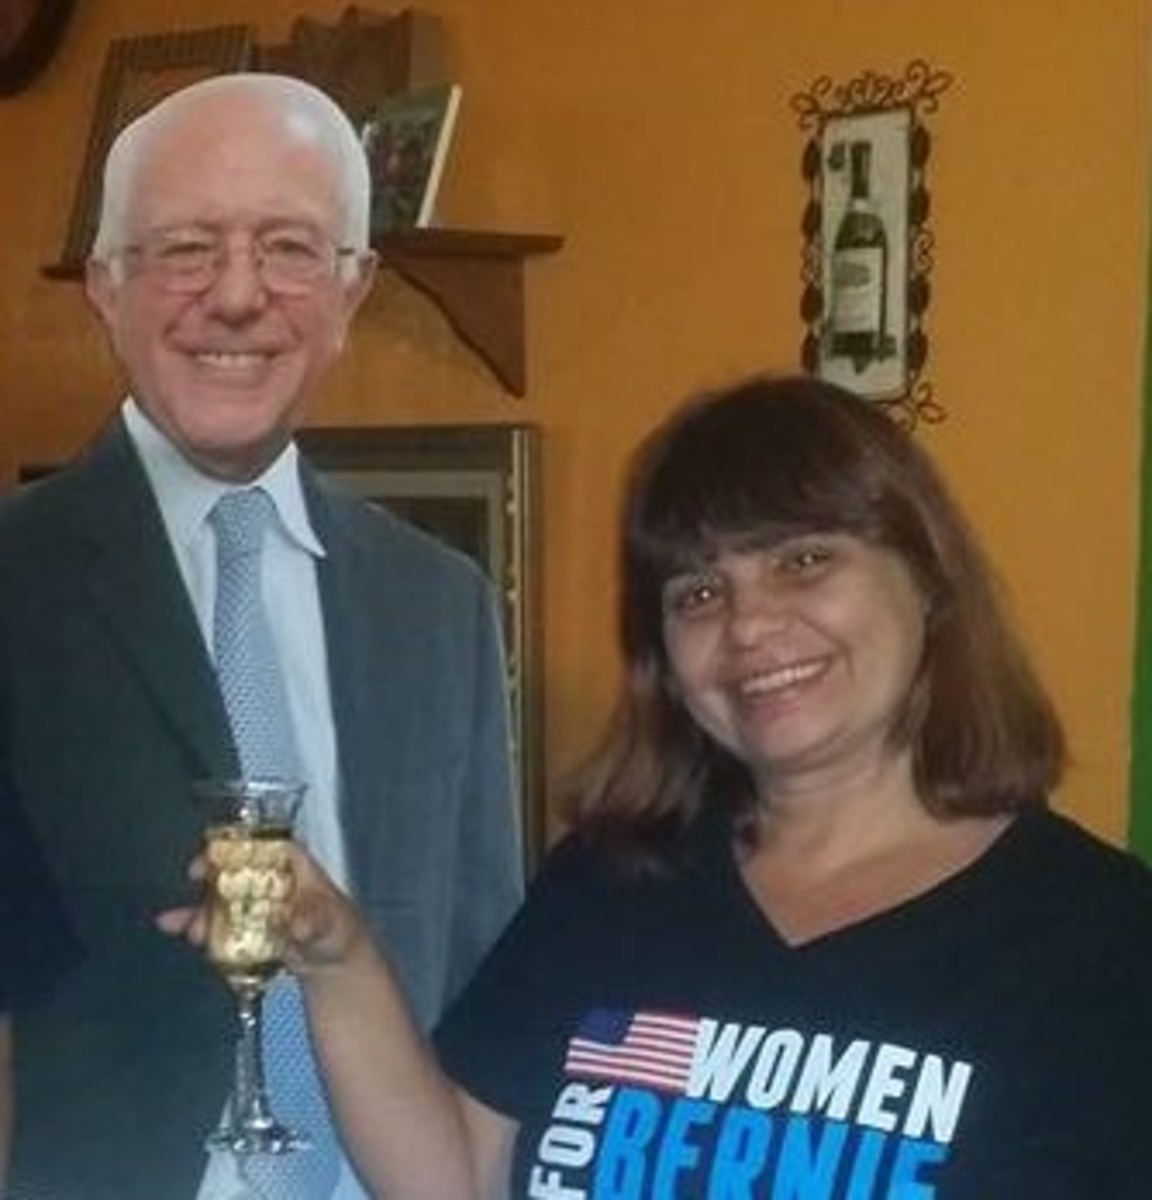 A toast to Kerry's favorite candidate, Bernie Sanders.